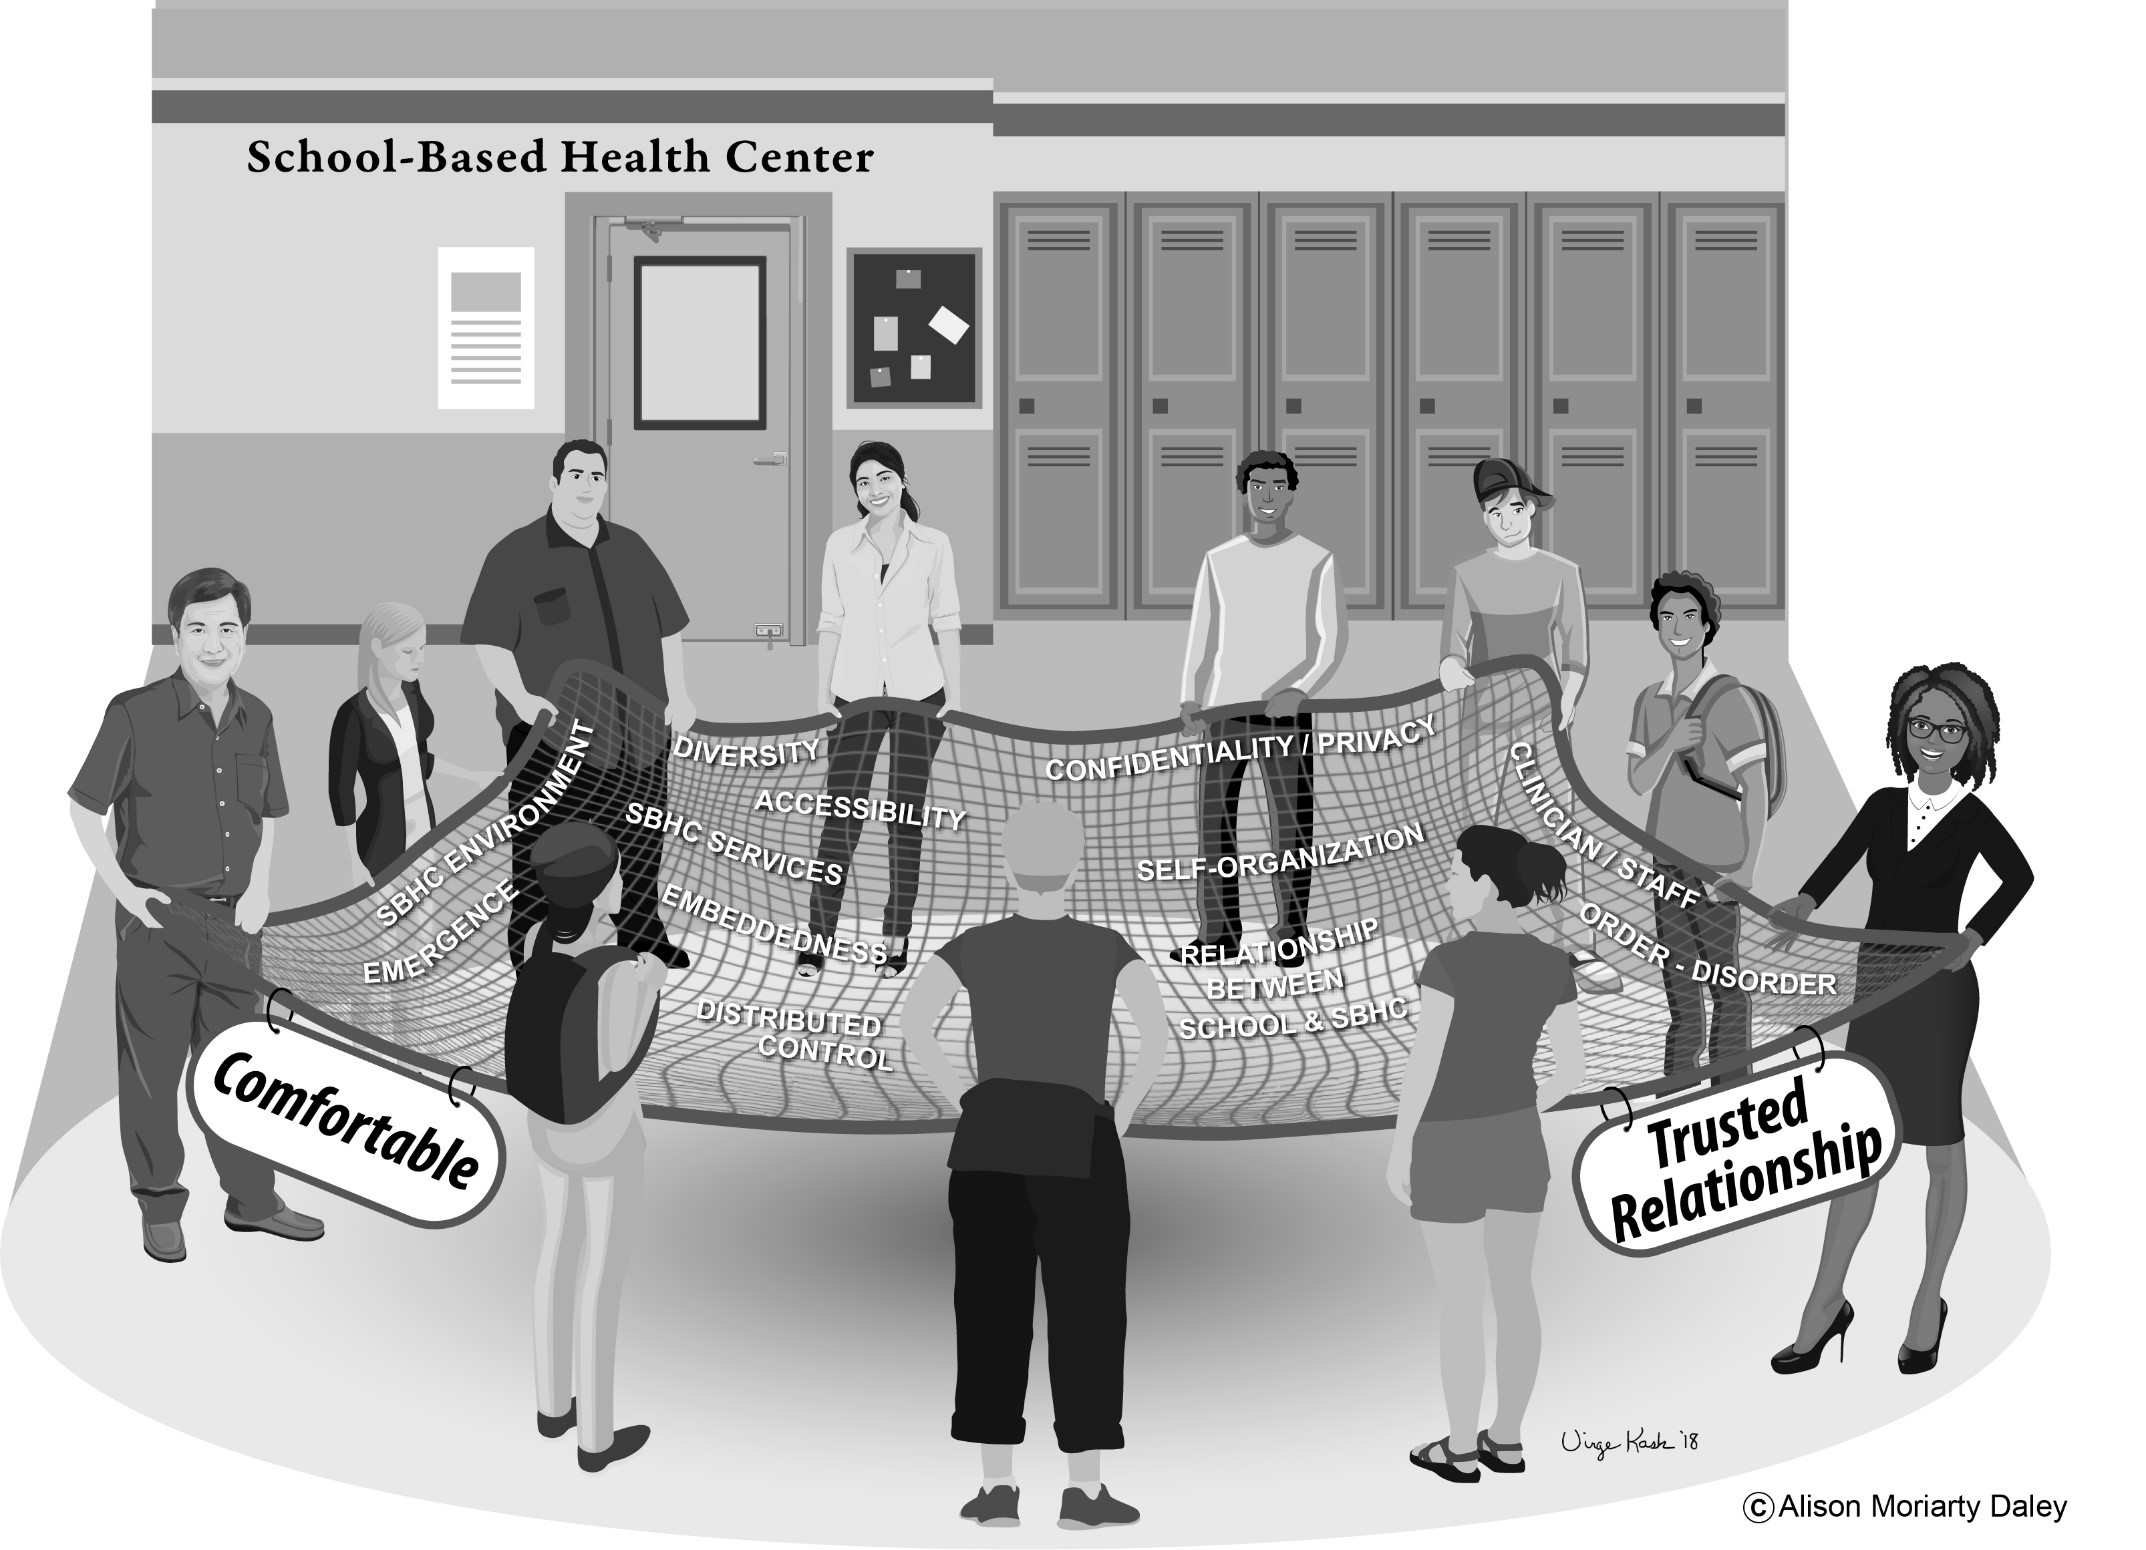 "Cartoon diverse School officials in front of sign that says ""School-based Health center"" holding a net with words lying on it: SBHC environment, Emergence, Diversity, Accessibility, SBHC Services, Embeddedness, Distributed control, confidentiality/privacy, self-organization, relationship between school and SBHC, clinician staff, order, disorder; Hanging from net are words Comfortable, and Trusted Relationship;"